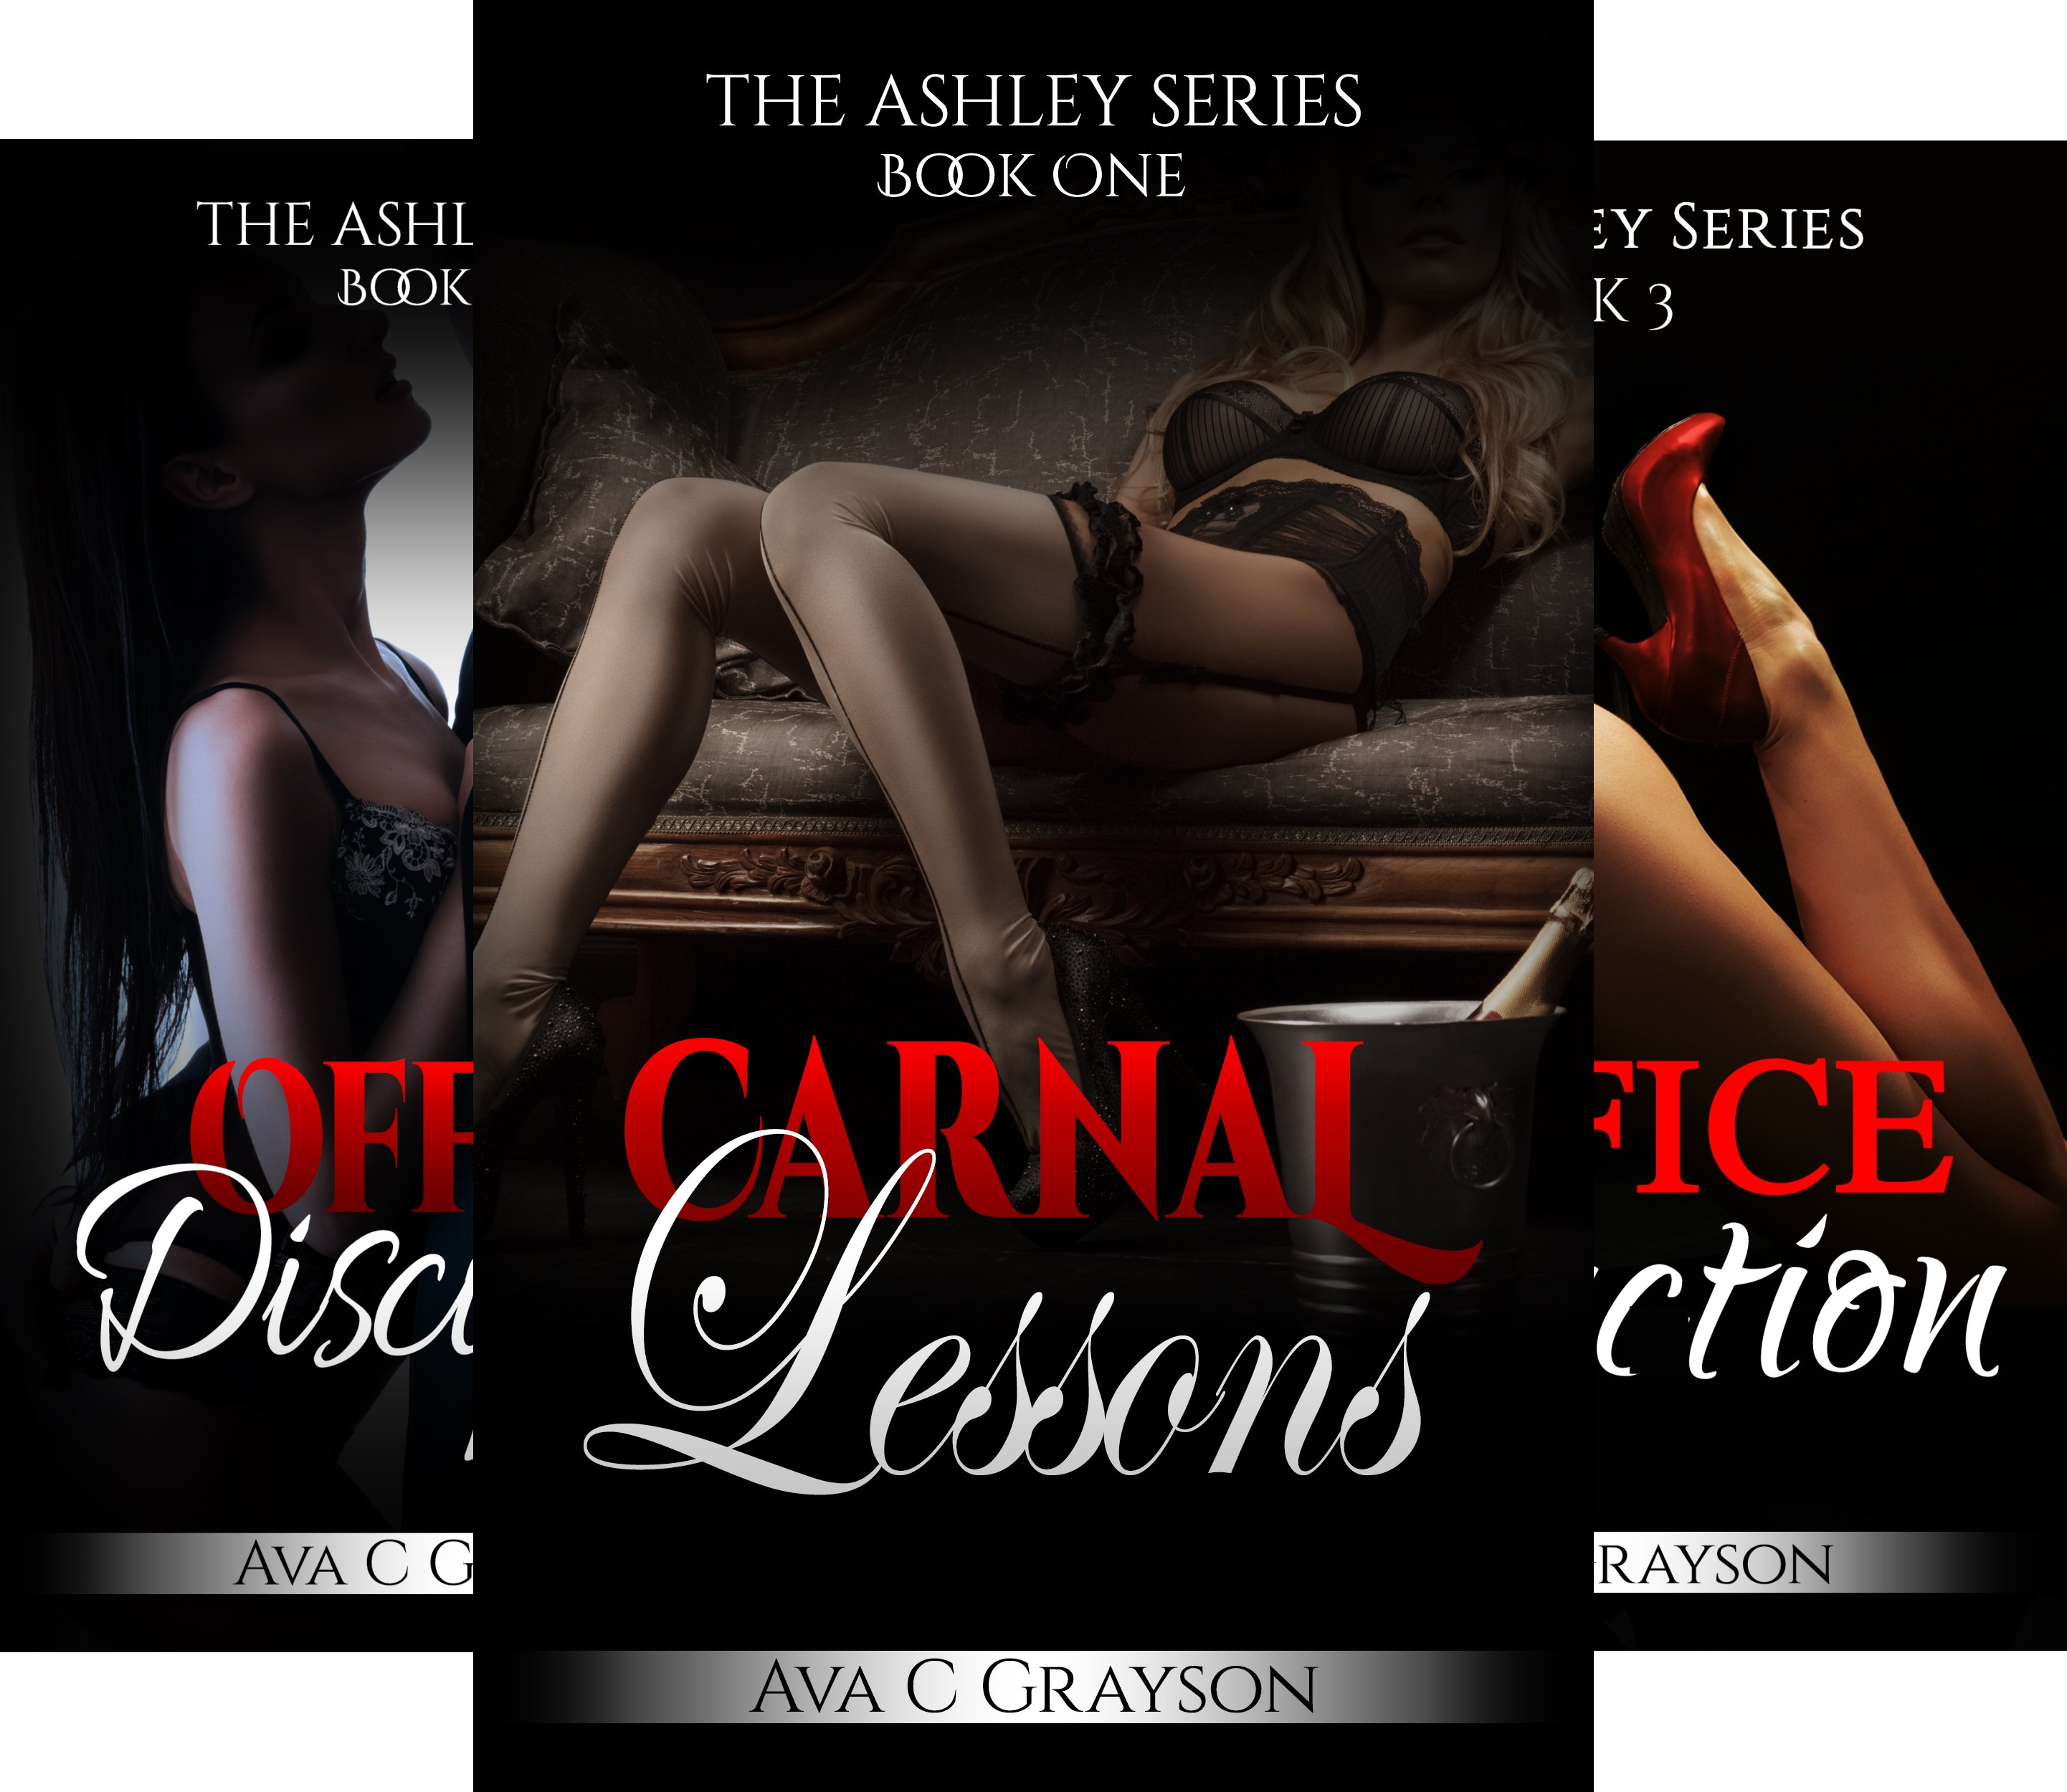 The Ashley Series (3 Book Series)